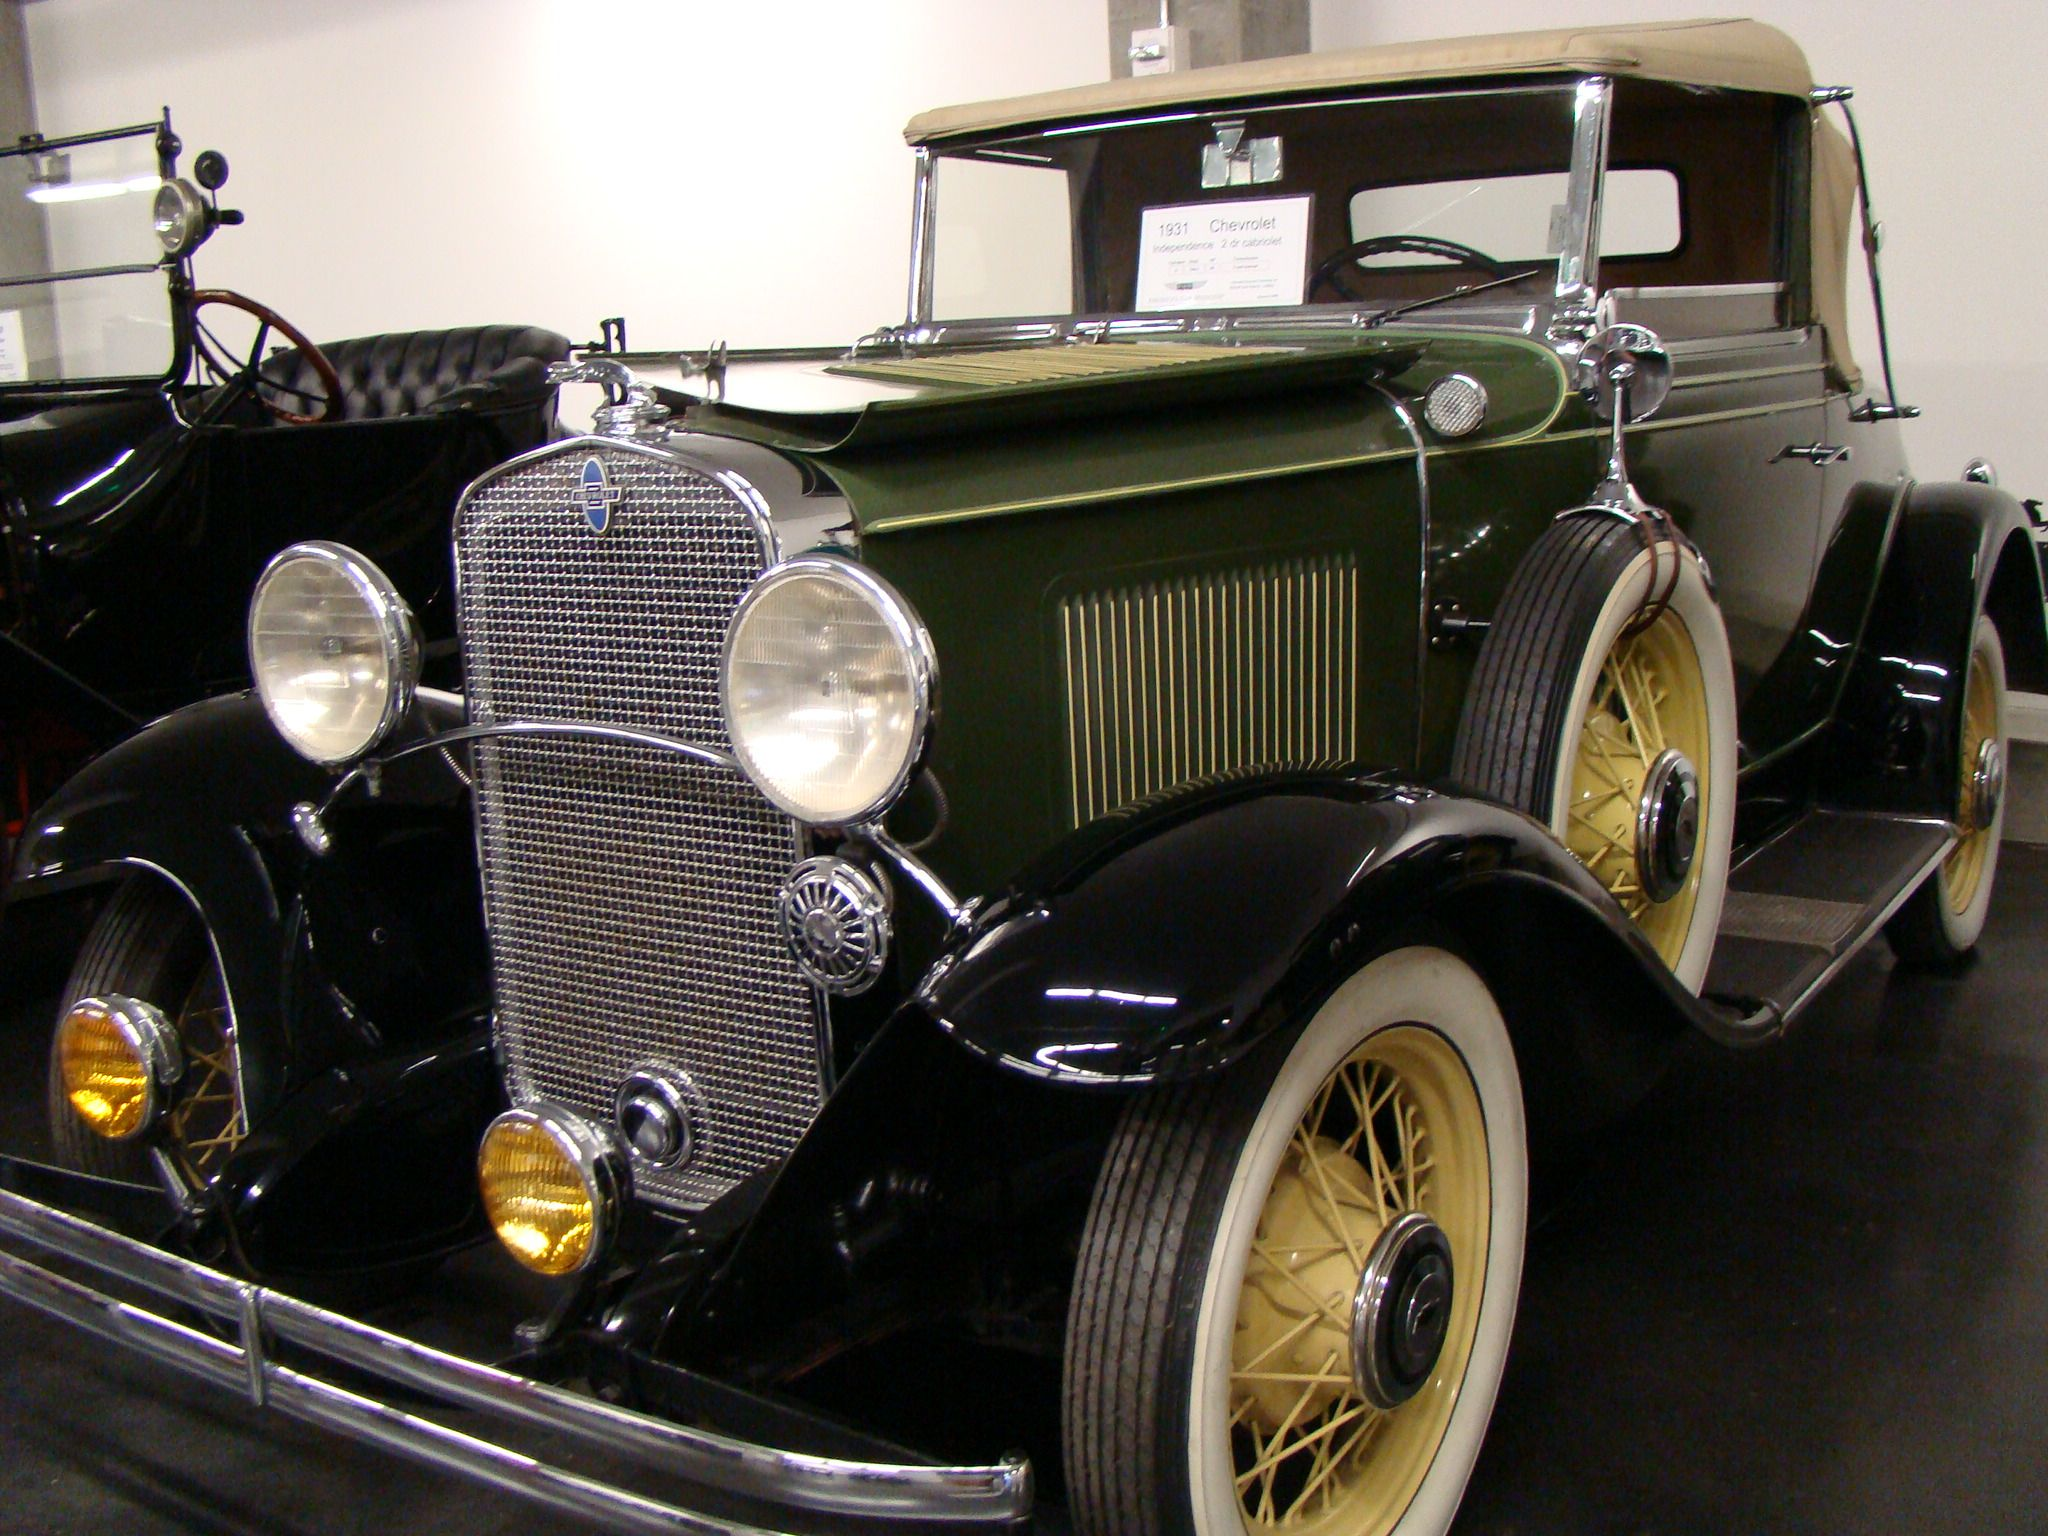 1931 Chevrolet Brought To You By The Car Insurance Agents At House